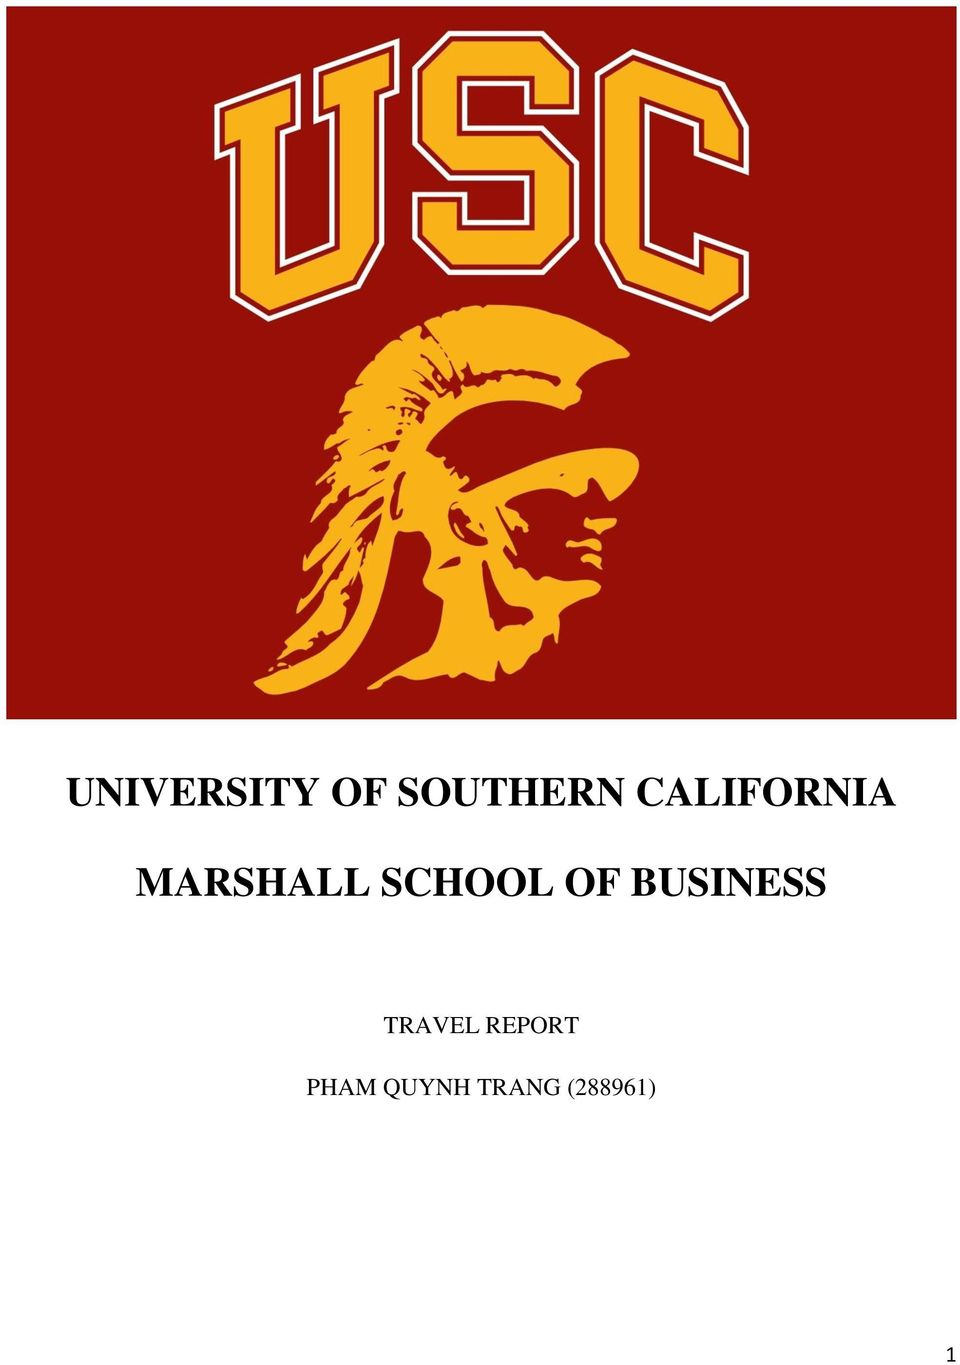 SCHOOL OF BUSINESS TRAVEL